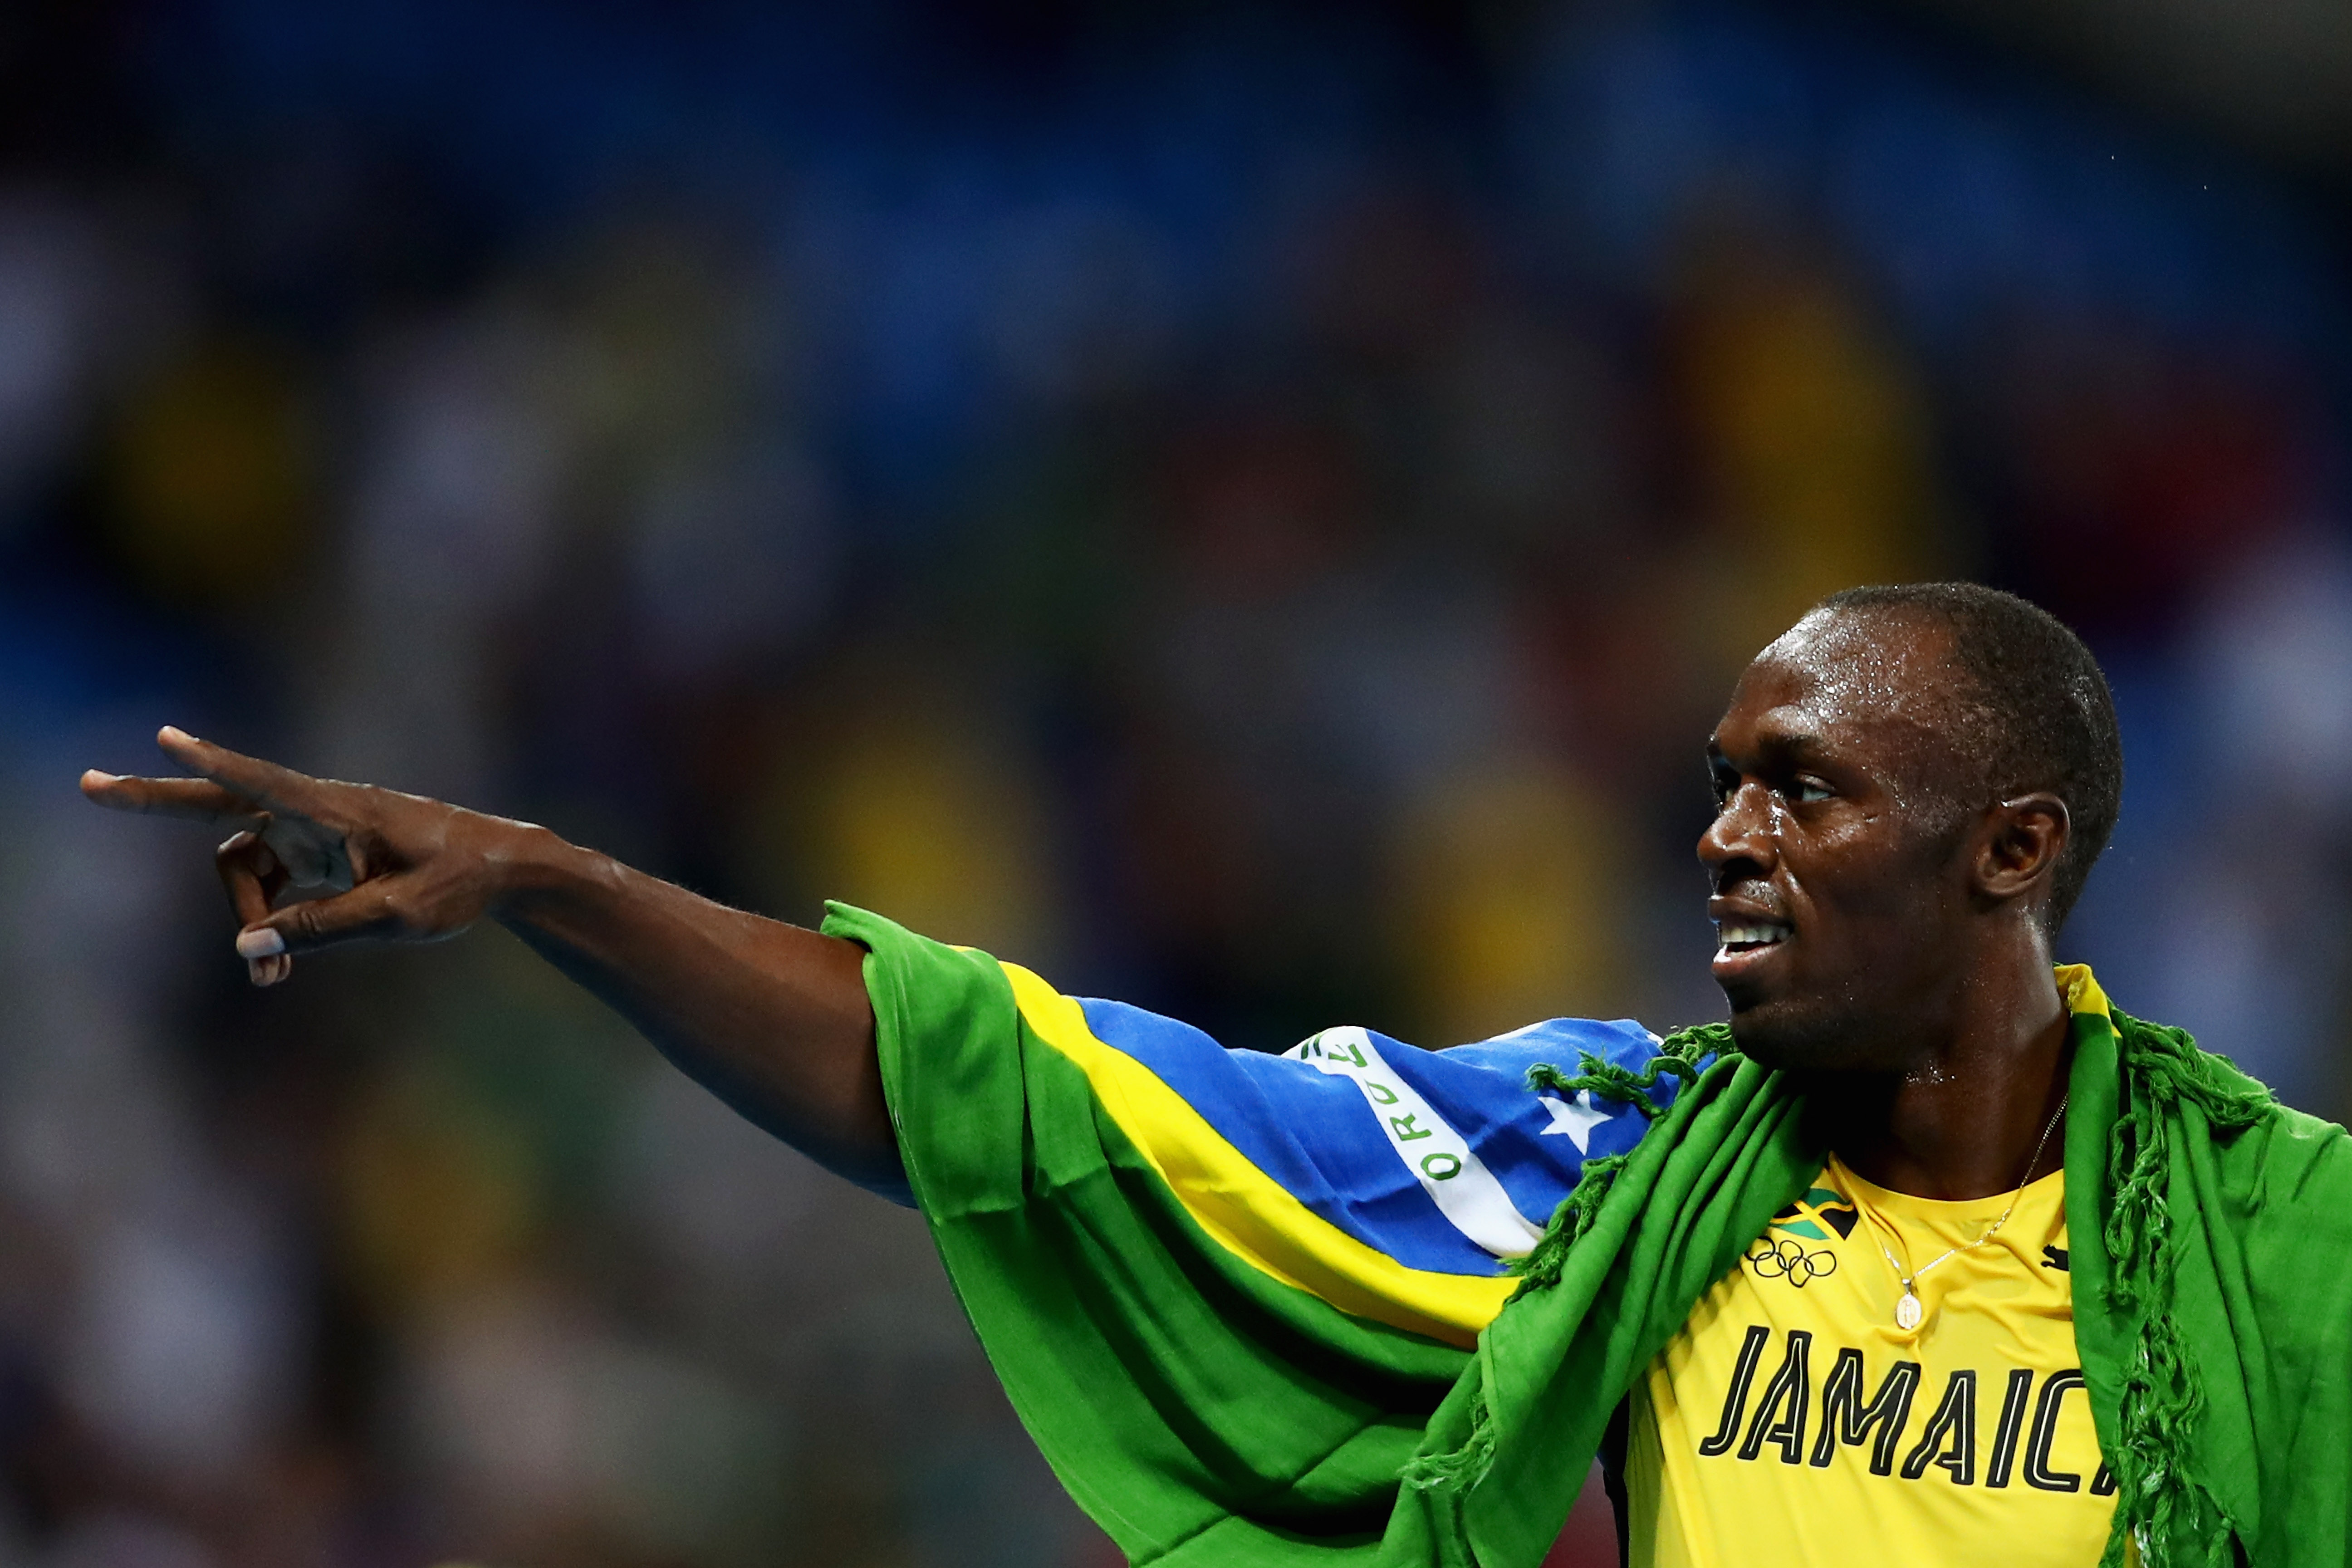 e3518835929 Watch Usain Bolt Imitate LeBron James After Winning Yet Another Gold Medal